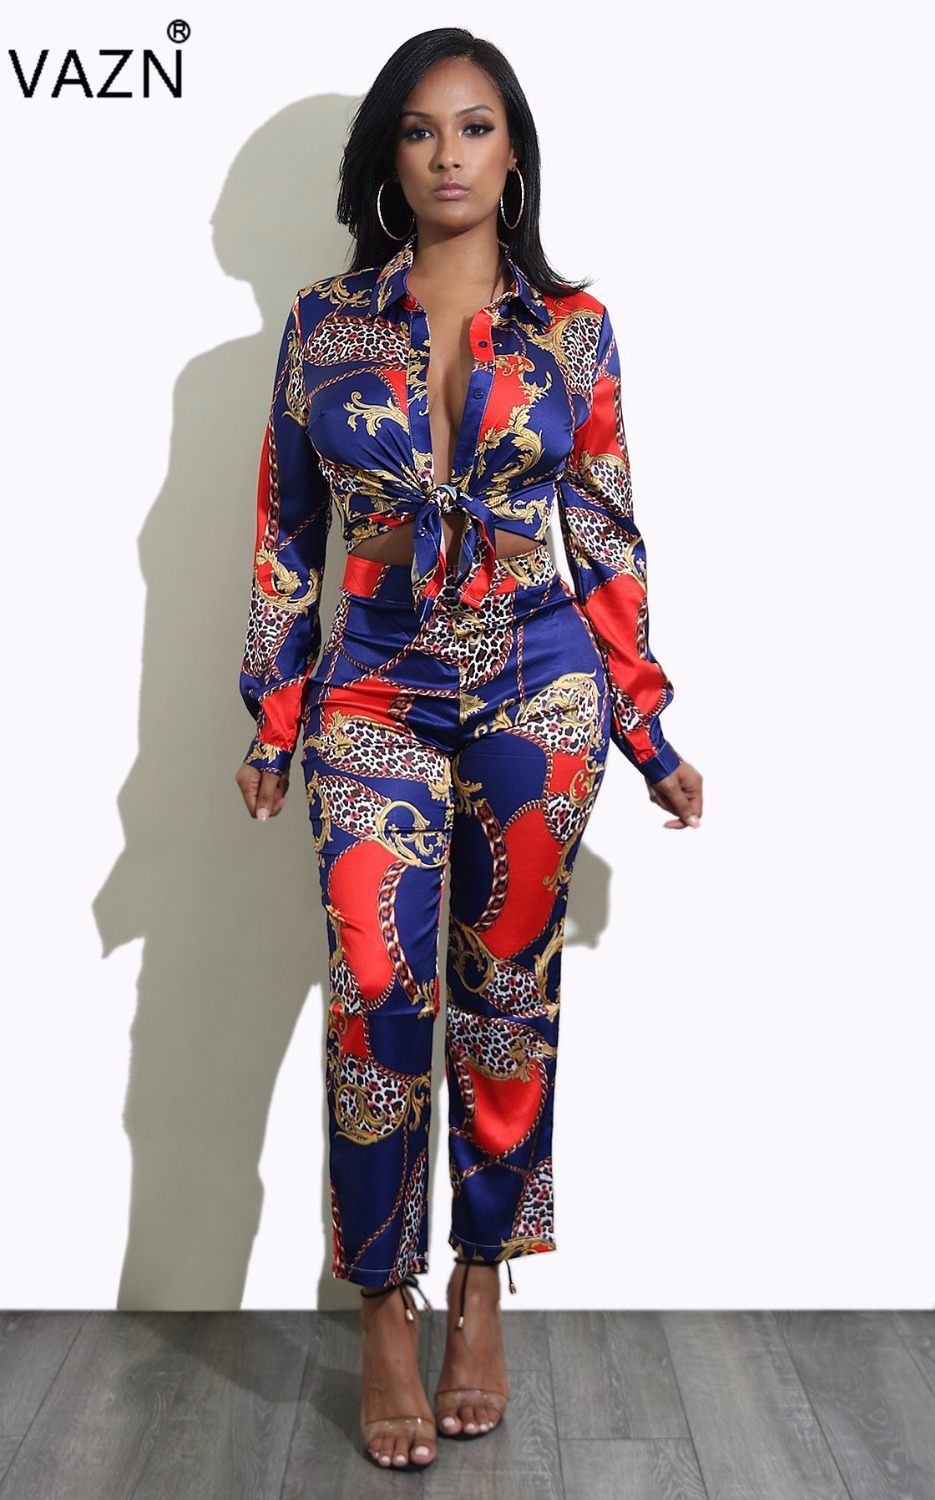 VAZN 2017 Most Popular Fashion Sleeve Women Costume Summer Bodycon 2-piece Jumpsuits Print Party Rompers XM059